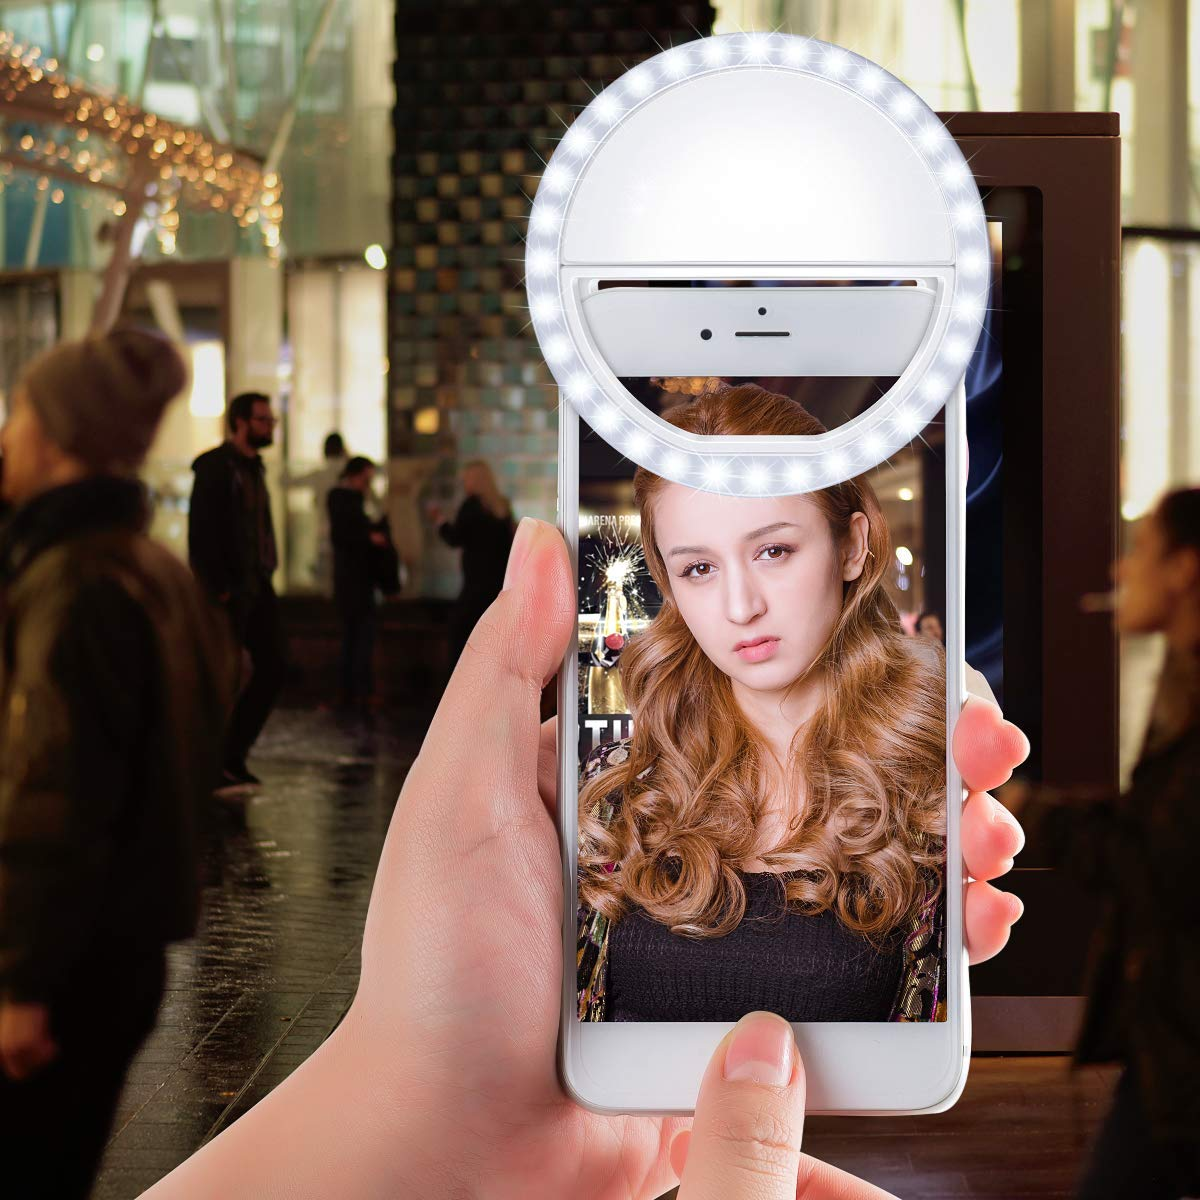 Meifigno Selfie Phone Camera Ring Light with [Rechargeable] 36 LED Light, 3-Level Adjustable Brightness On-Video Lights Clips On Night Makeup Light Compatible for iPhone Samsung Photography (White) by Meifigno (Image #6)